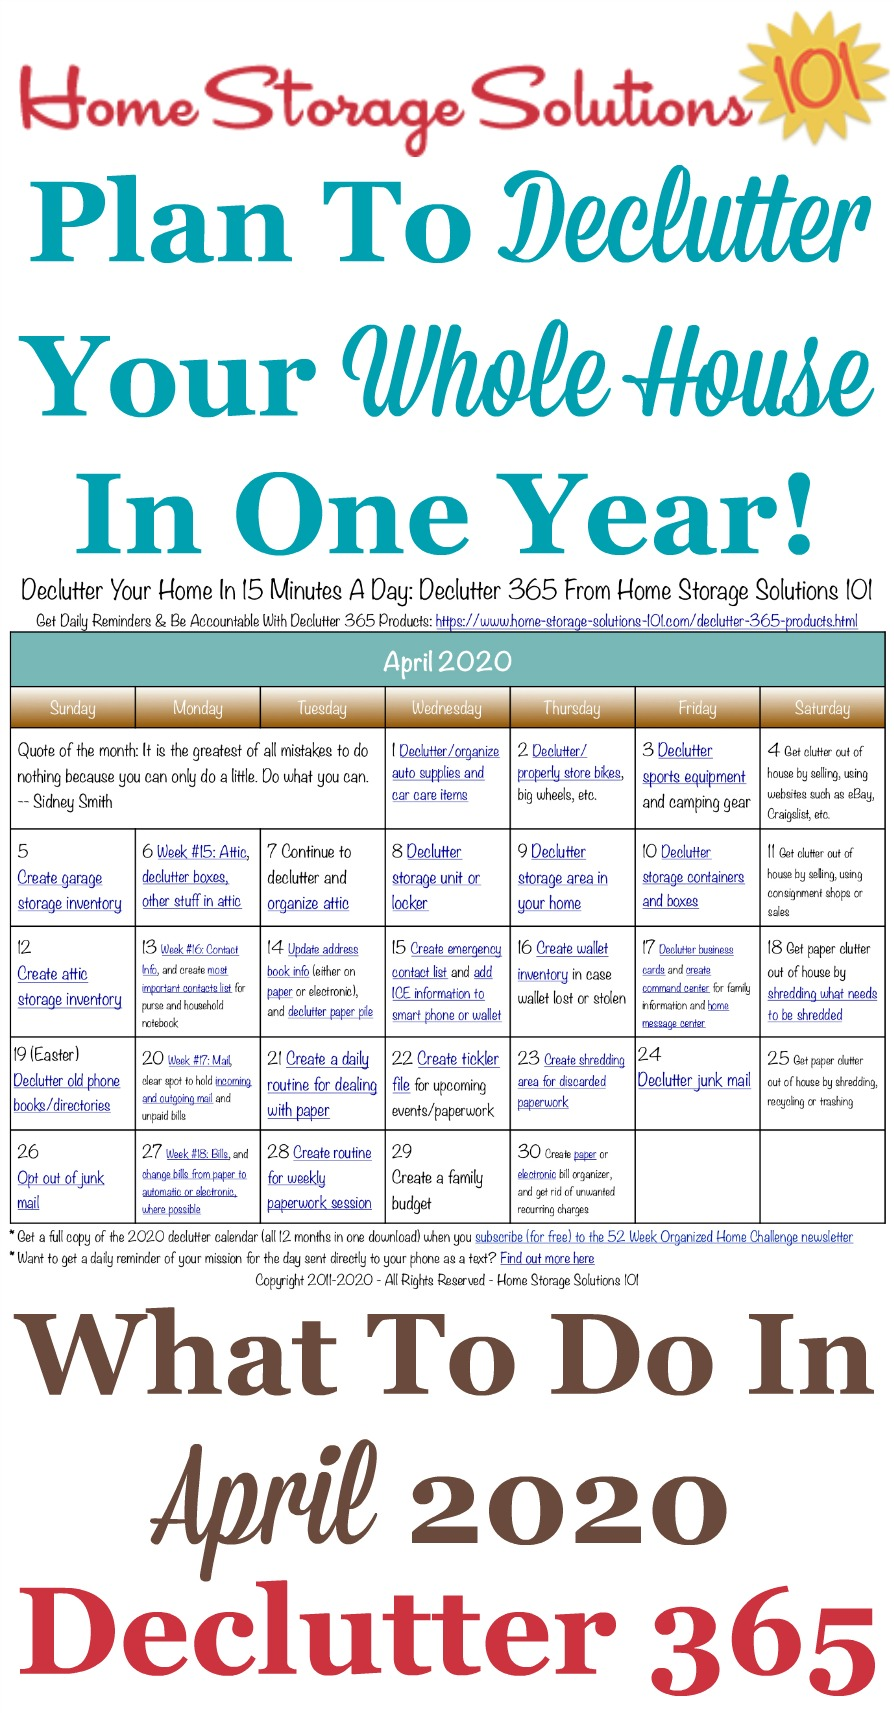 Free printable April 2020 #decluttering calendar with daily 15 minute missions. Follow the entire #Declutter365 plan provided by Home Storage Solutions 101 to #declutter your whole house in a year.